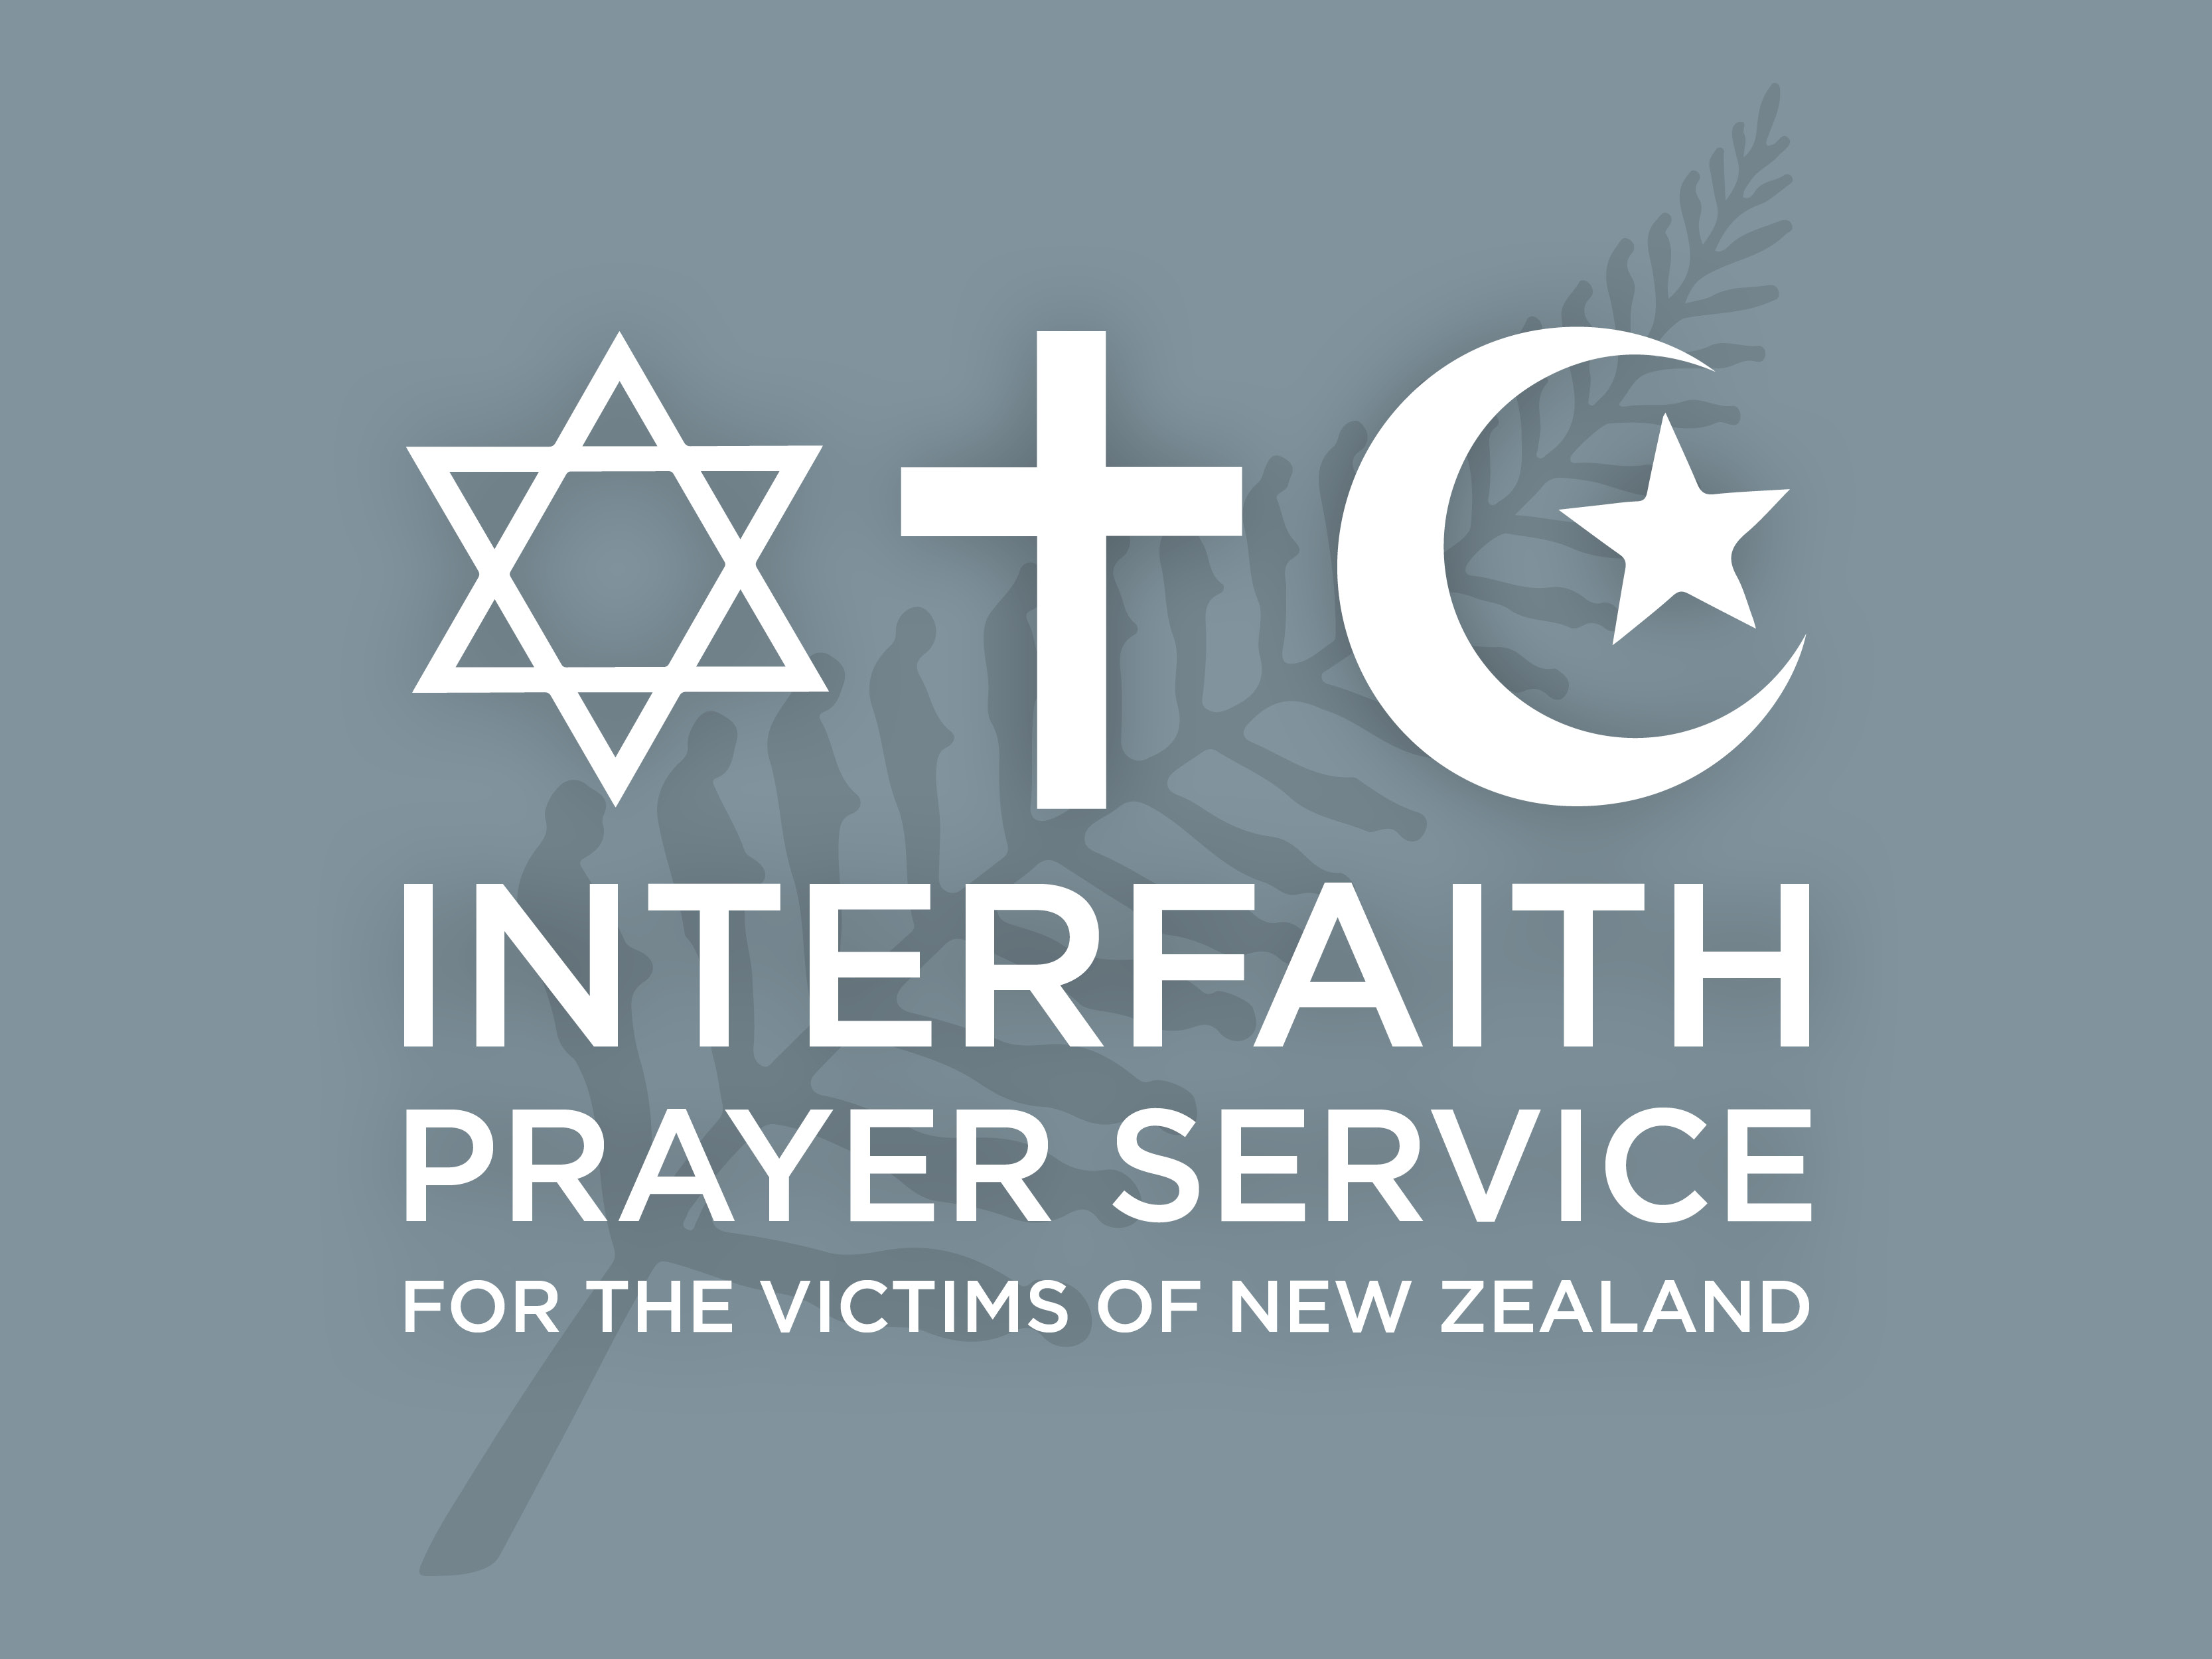 interfaith service of prayer